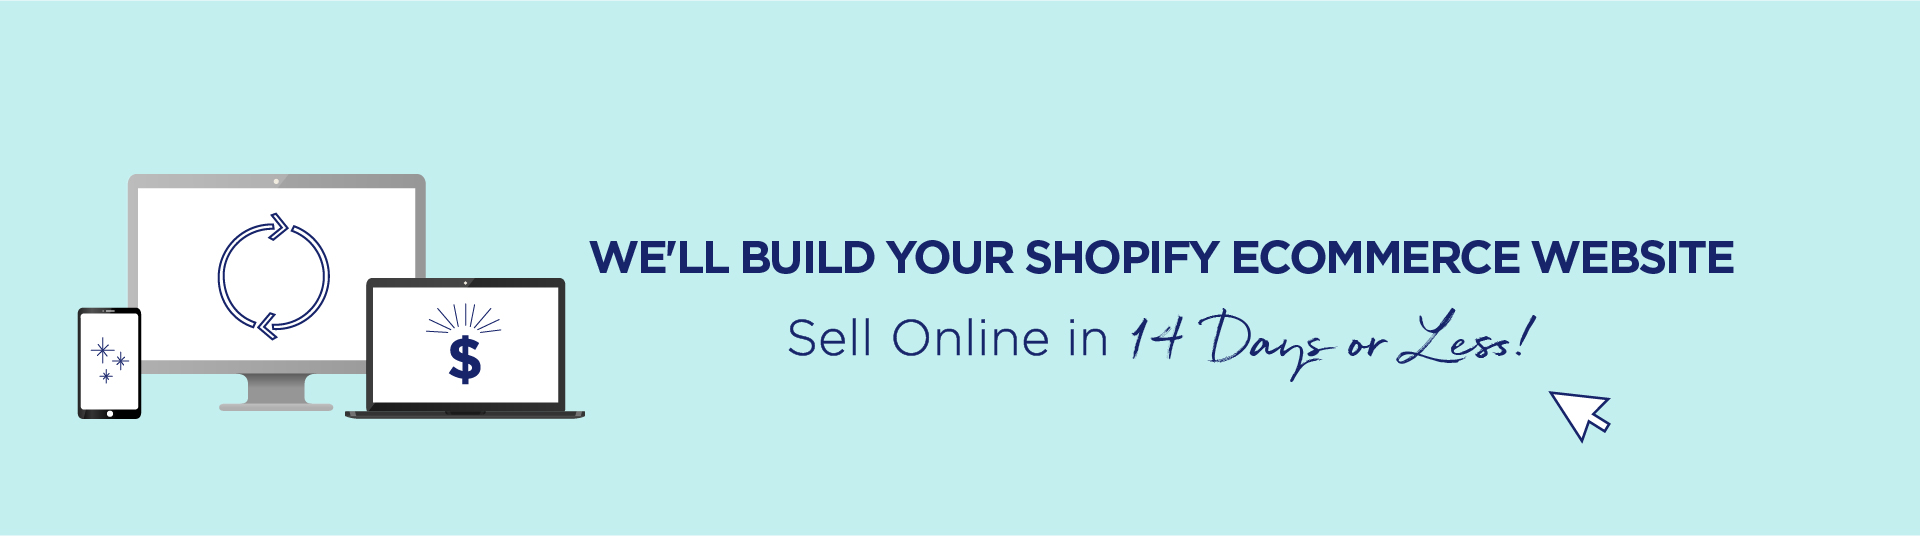 Shopify Site Header 2